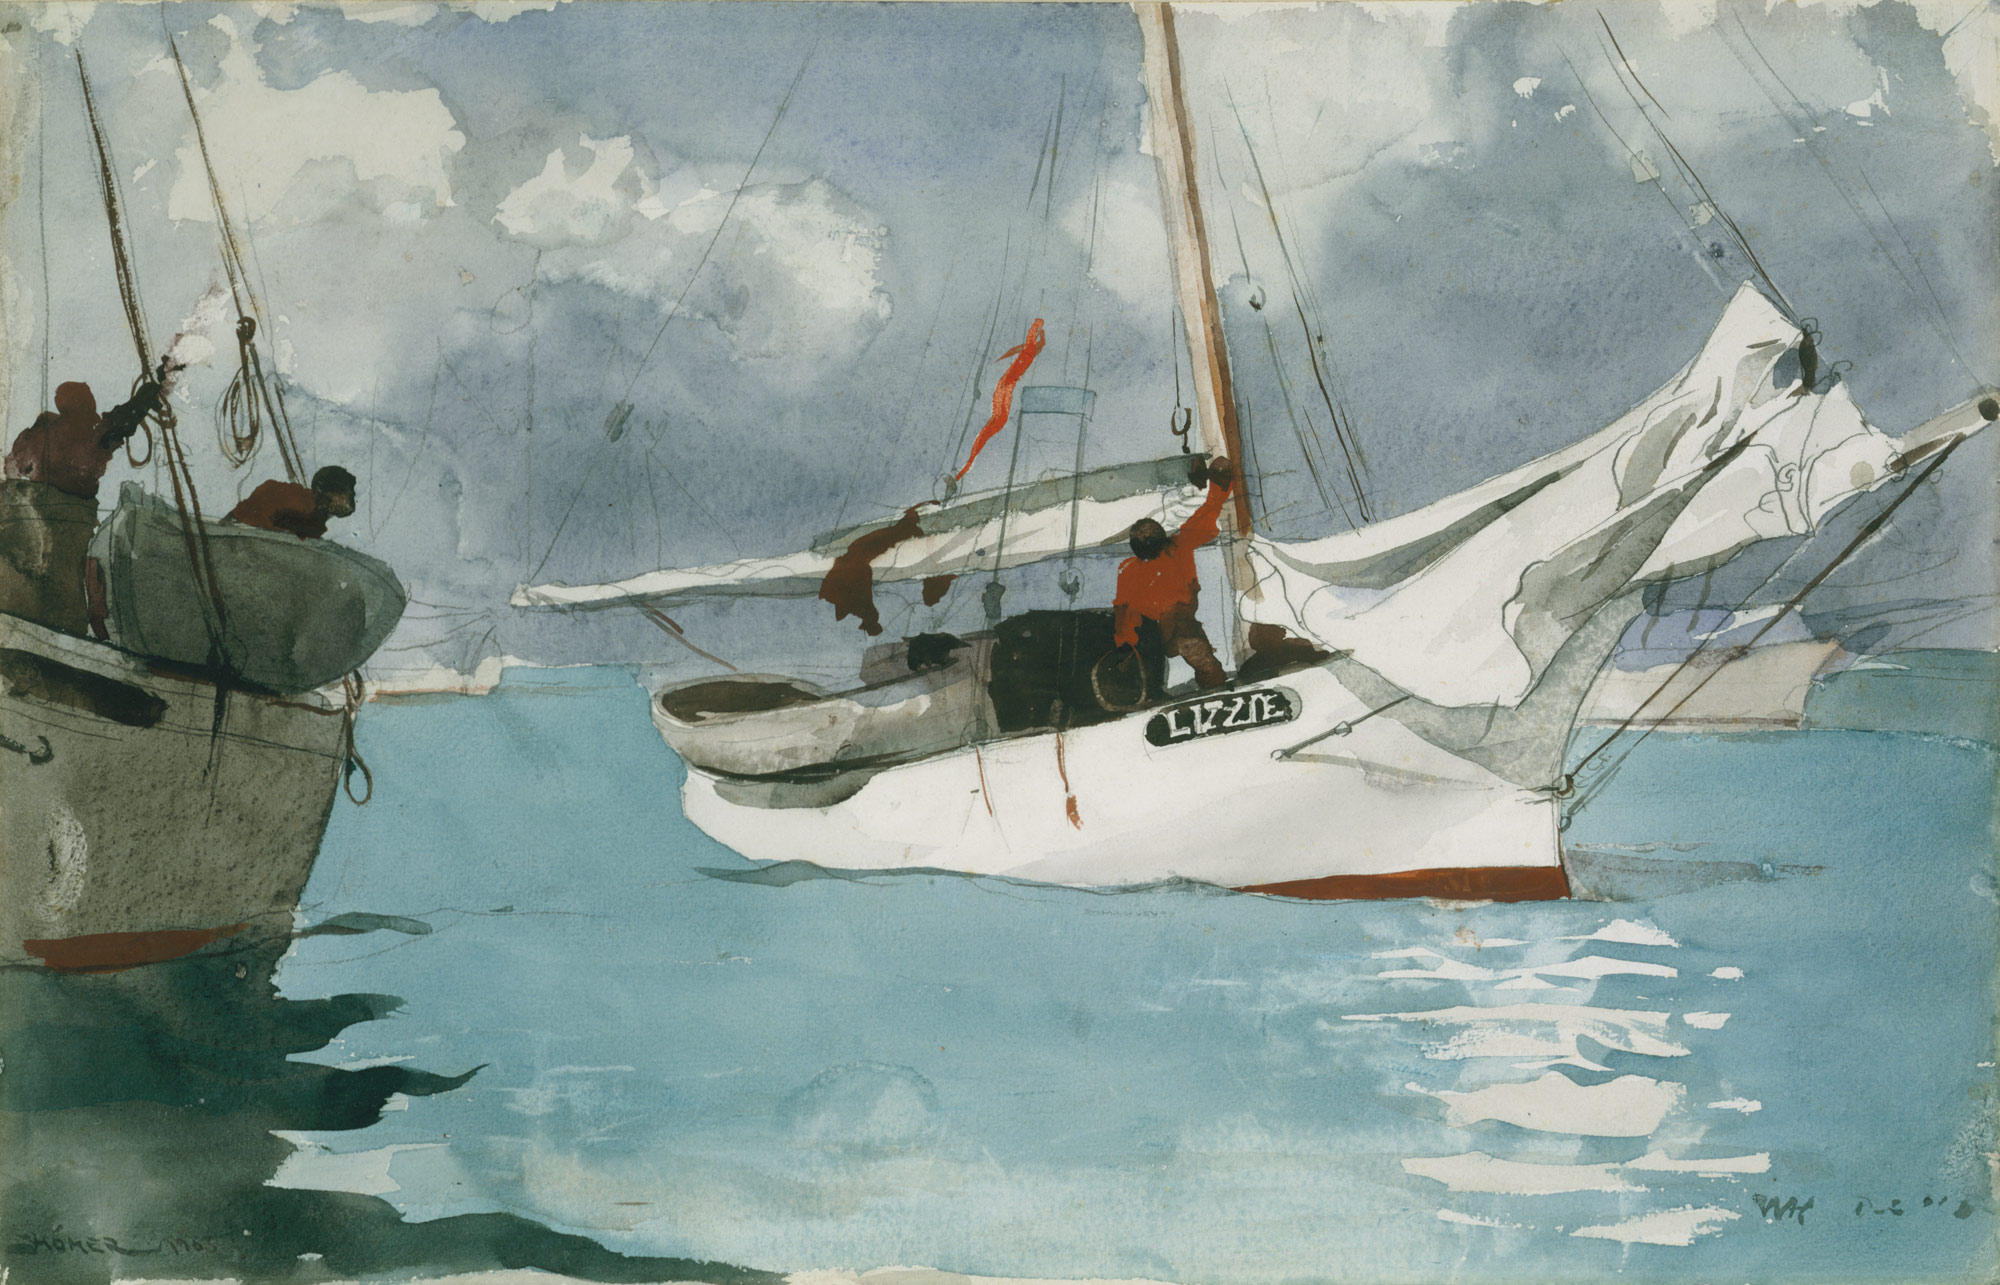 Winslow Homer, Fishing Boats, Key West, 1903